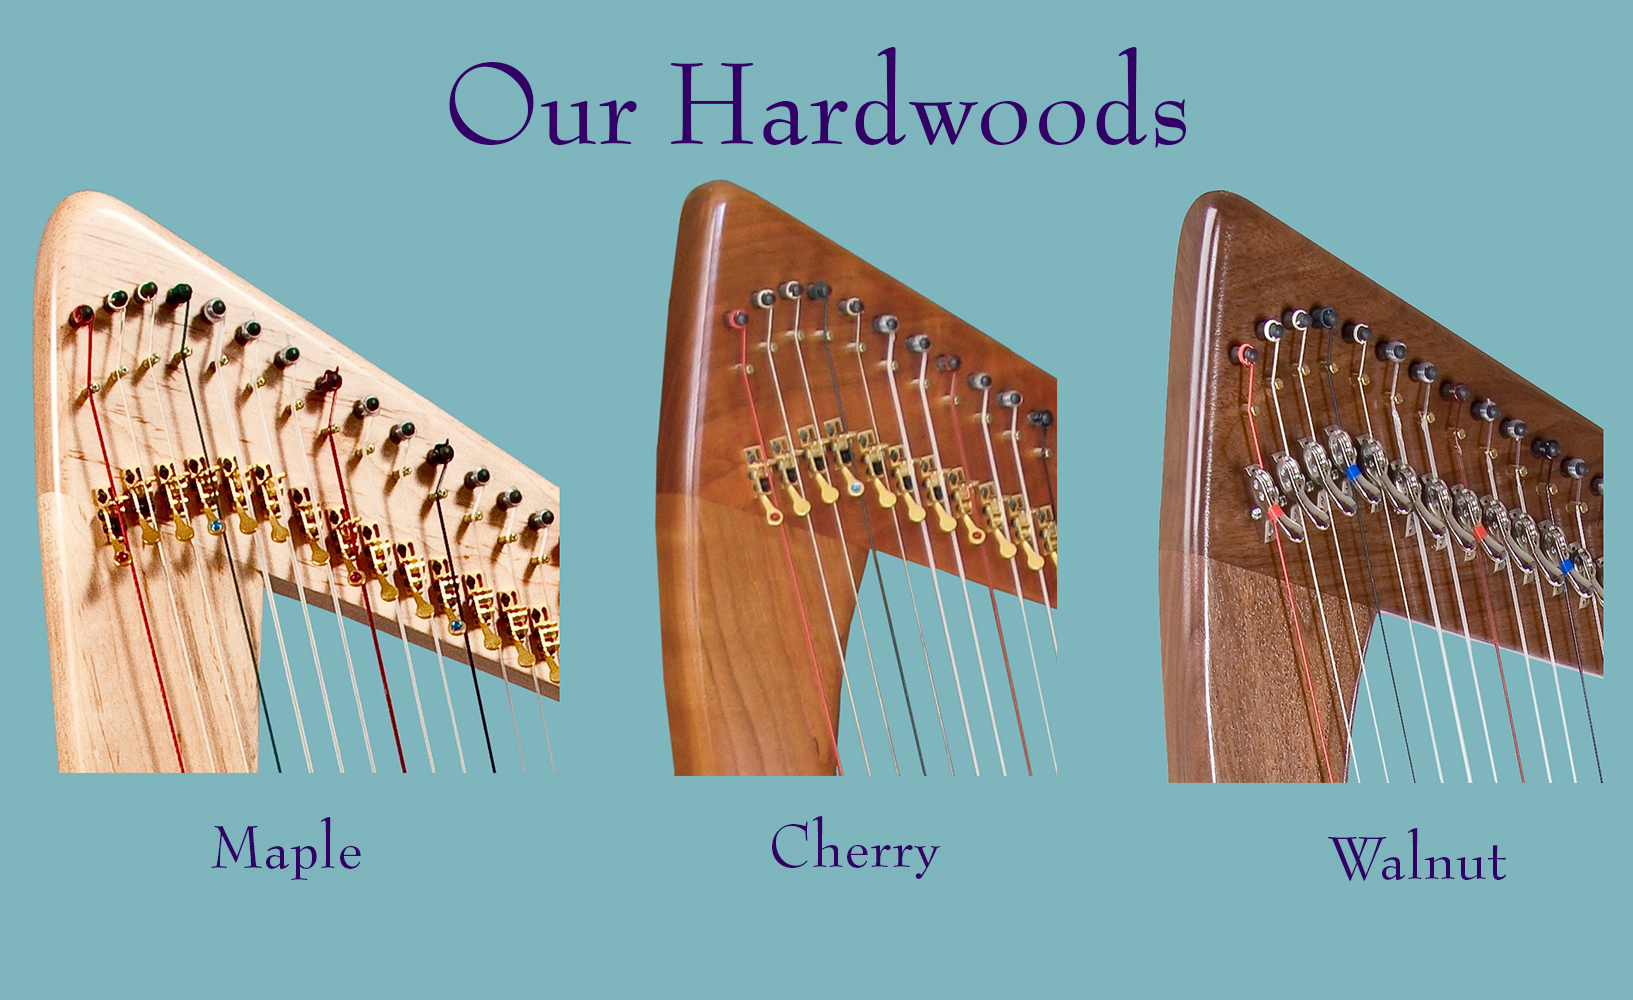 All of our Harpsicle®, Sharpsicle™, Flatsicle™, Fullsicle™, Grand Harpsicle® and Brilliant™ Harpsicle® Harps are built using maple as the hardwood. Special Edition Fullsicle™ Harps are made with either cherry or walnut.